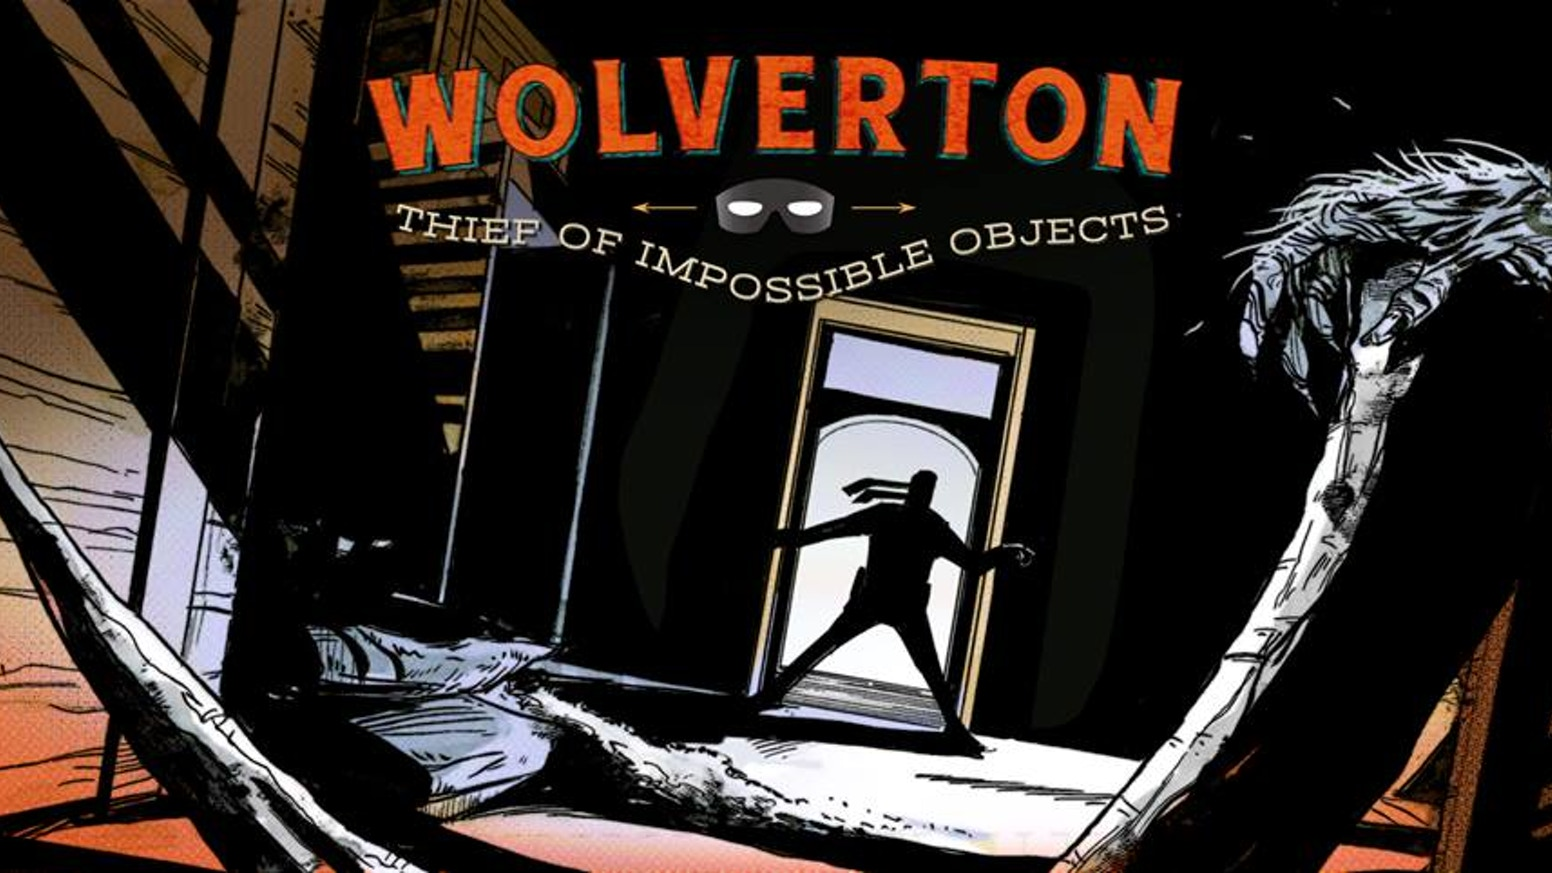 In turn of the century London, Jack Wolverton, gentleman thief, specializes in stealing the arcane, the accursed and the occultic.